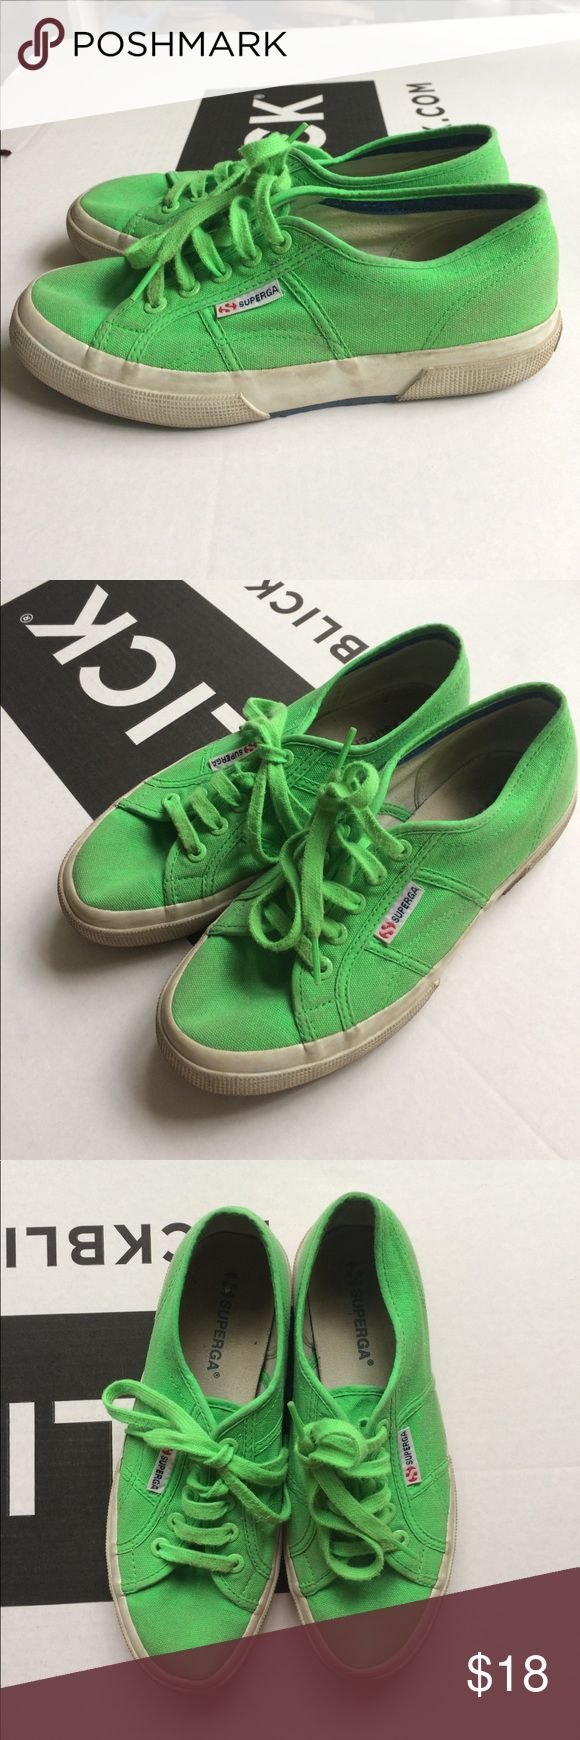 Lime green Superga sneakers Worn condition but still shine bright and have been washed !! Great for spicing up casual looks Superga Shoes Sneakers